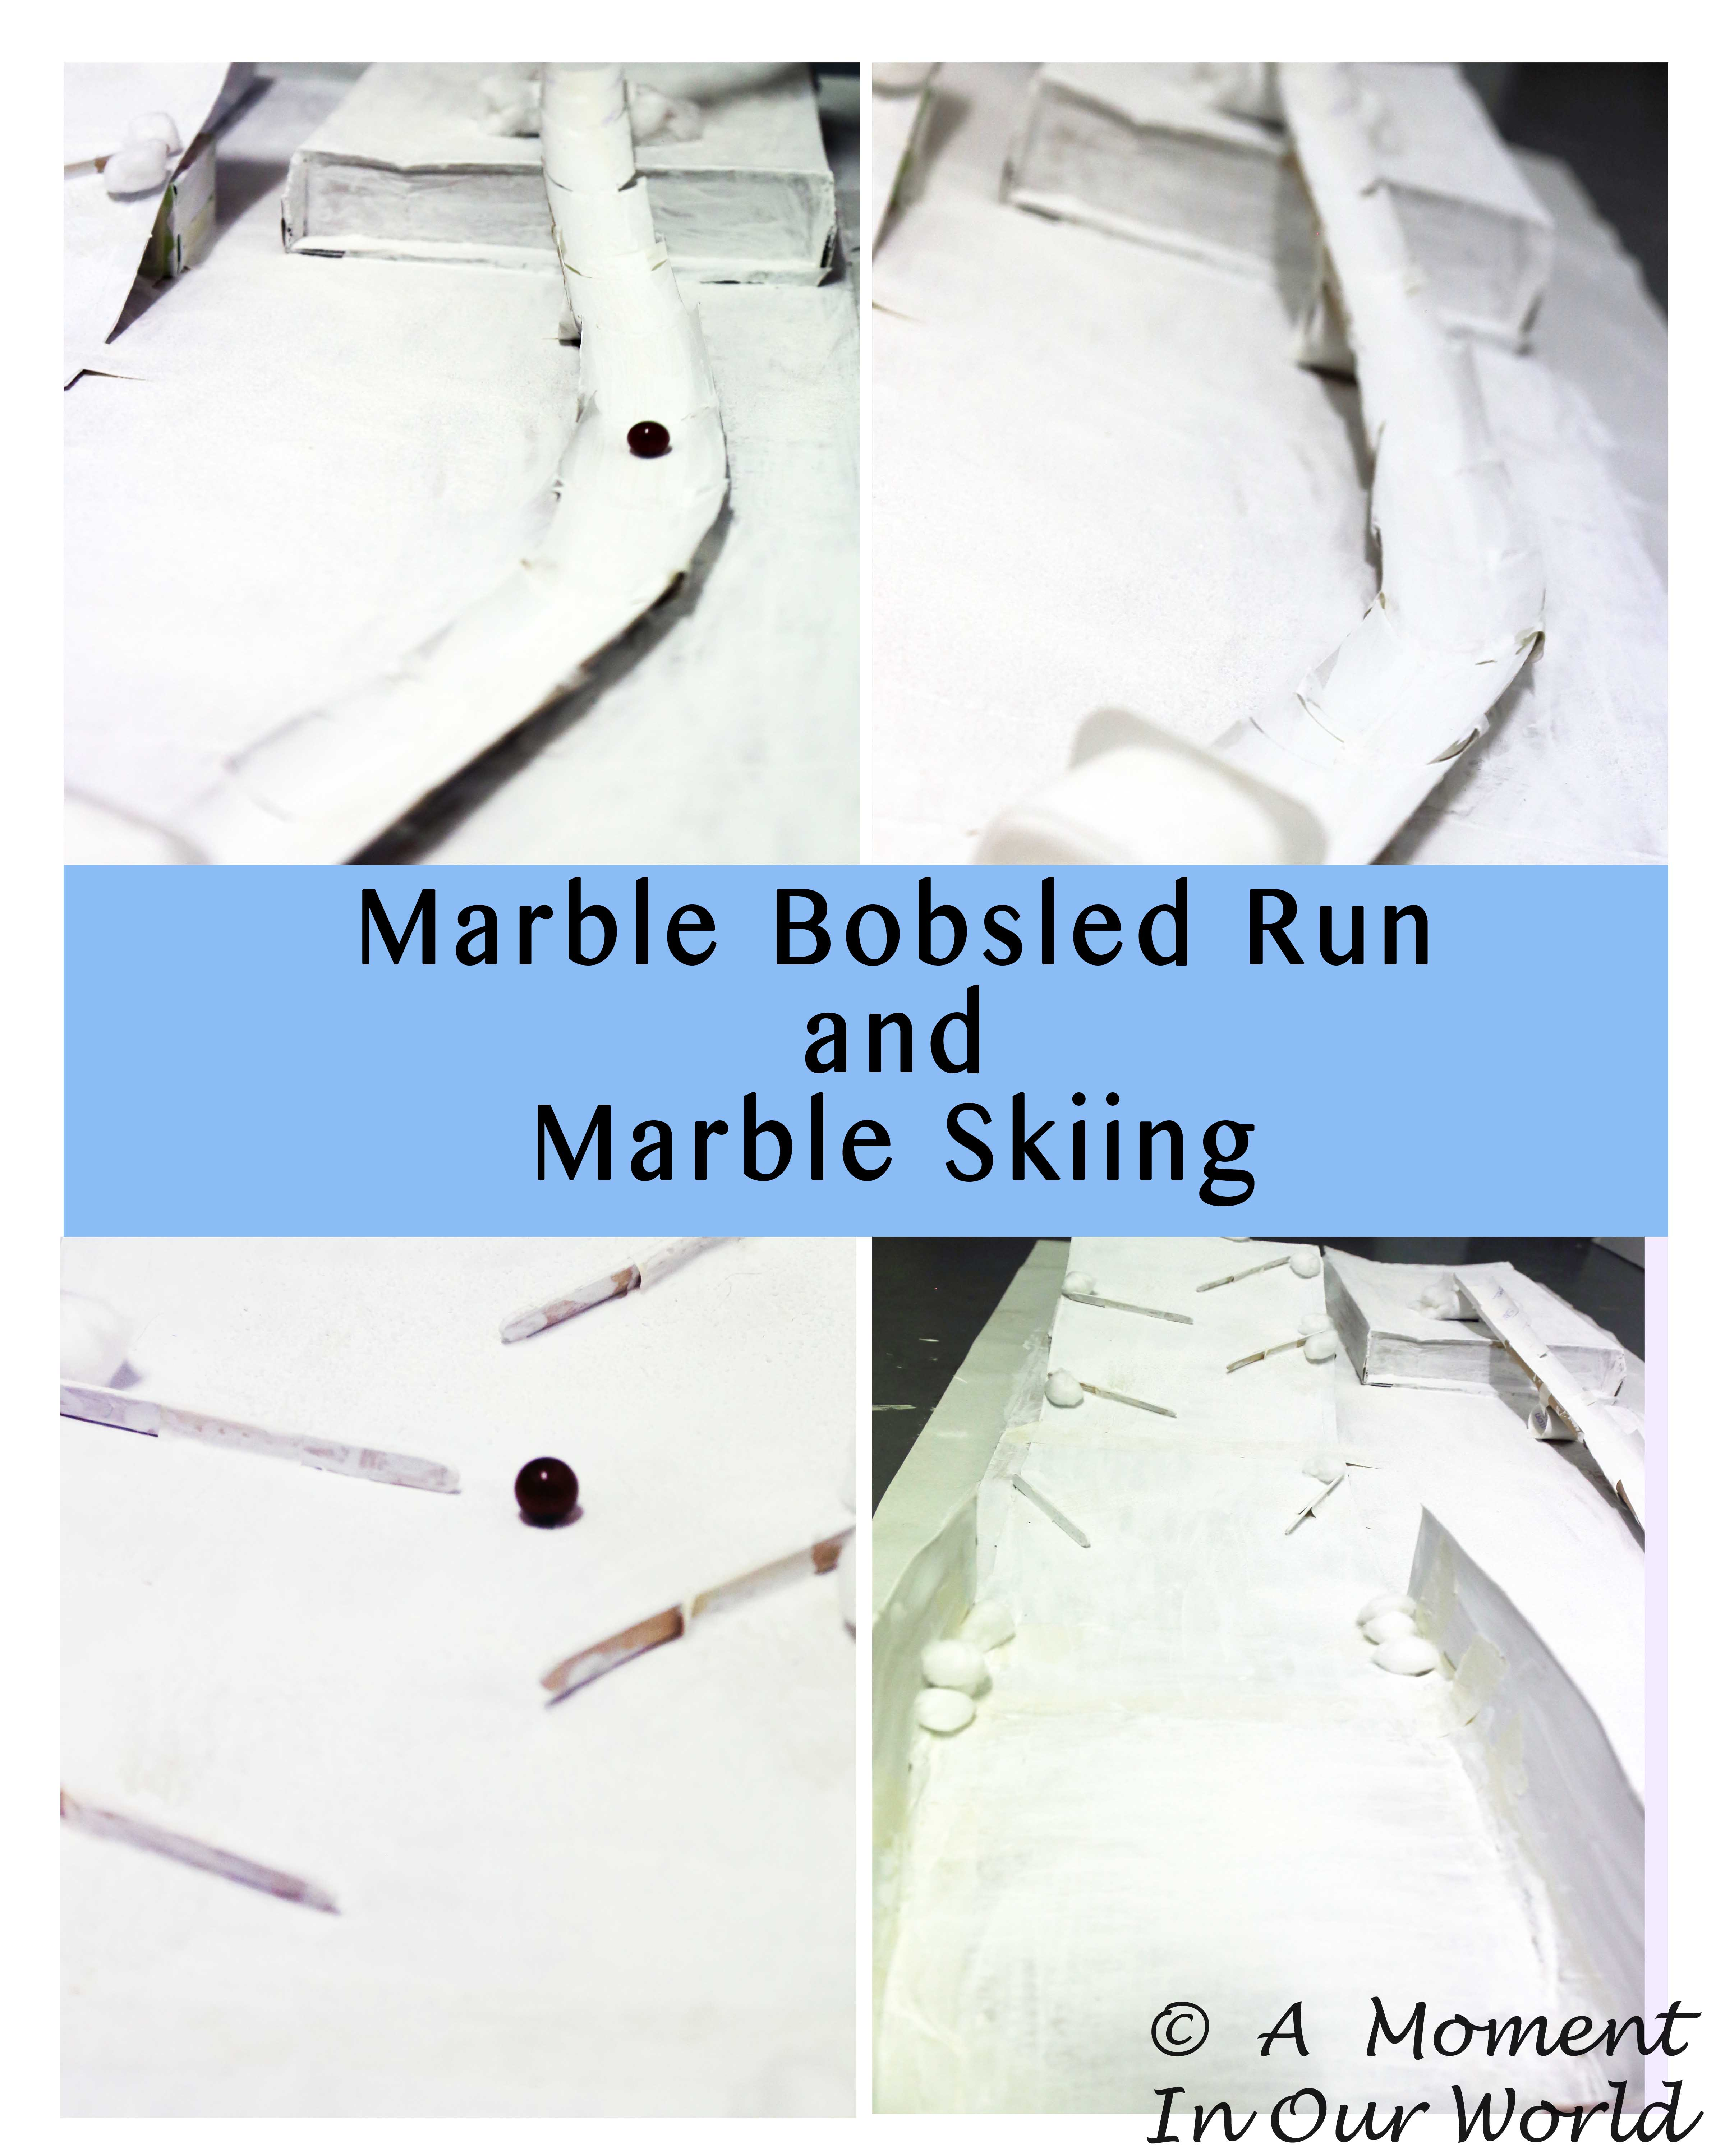 Marble Bobsled Run